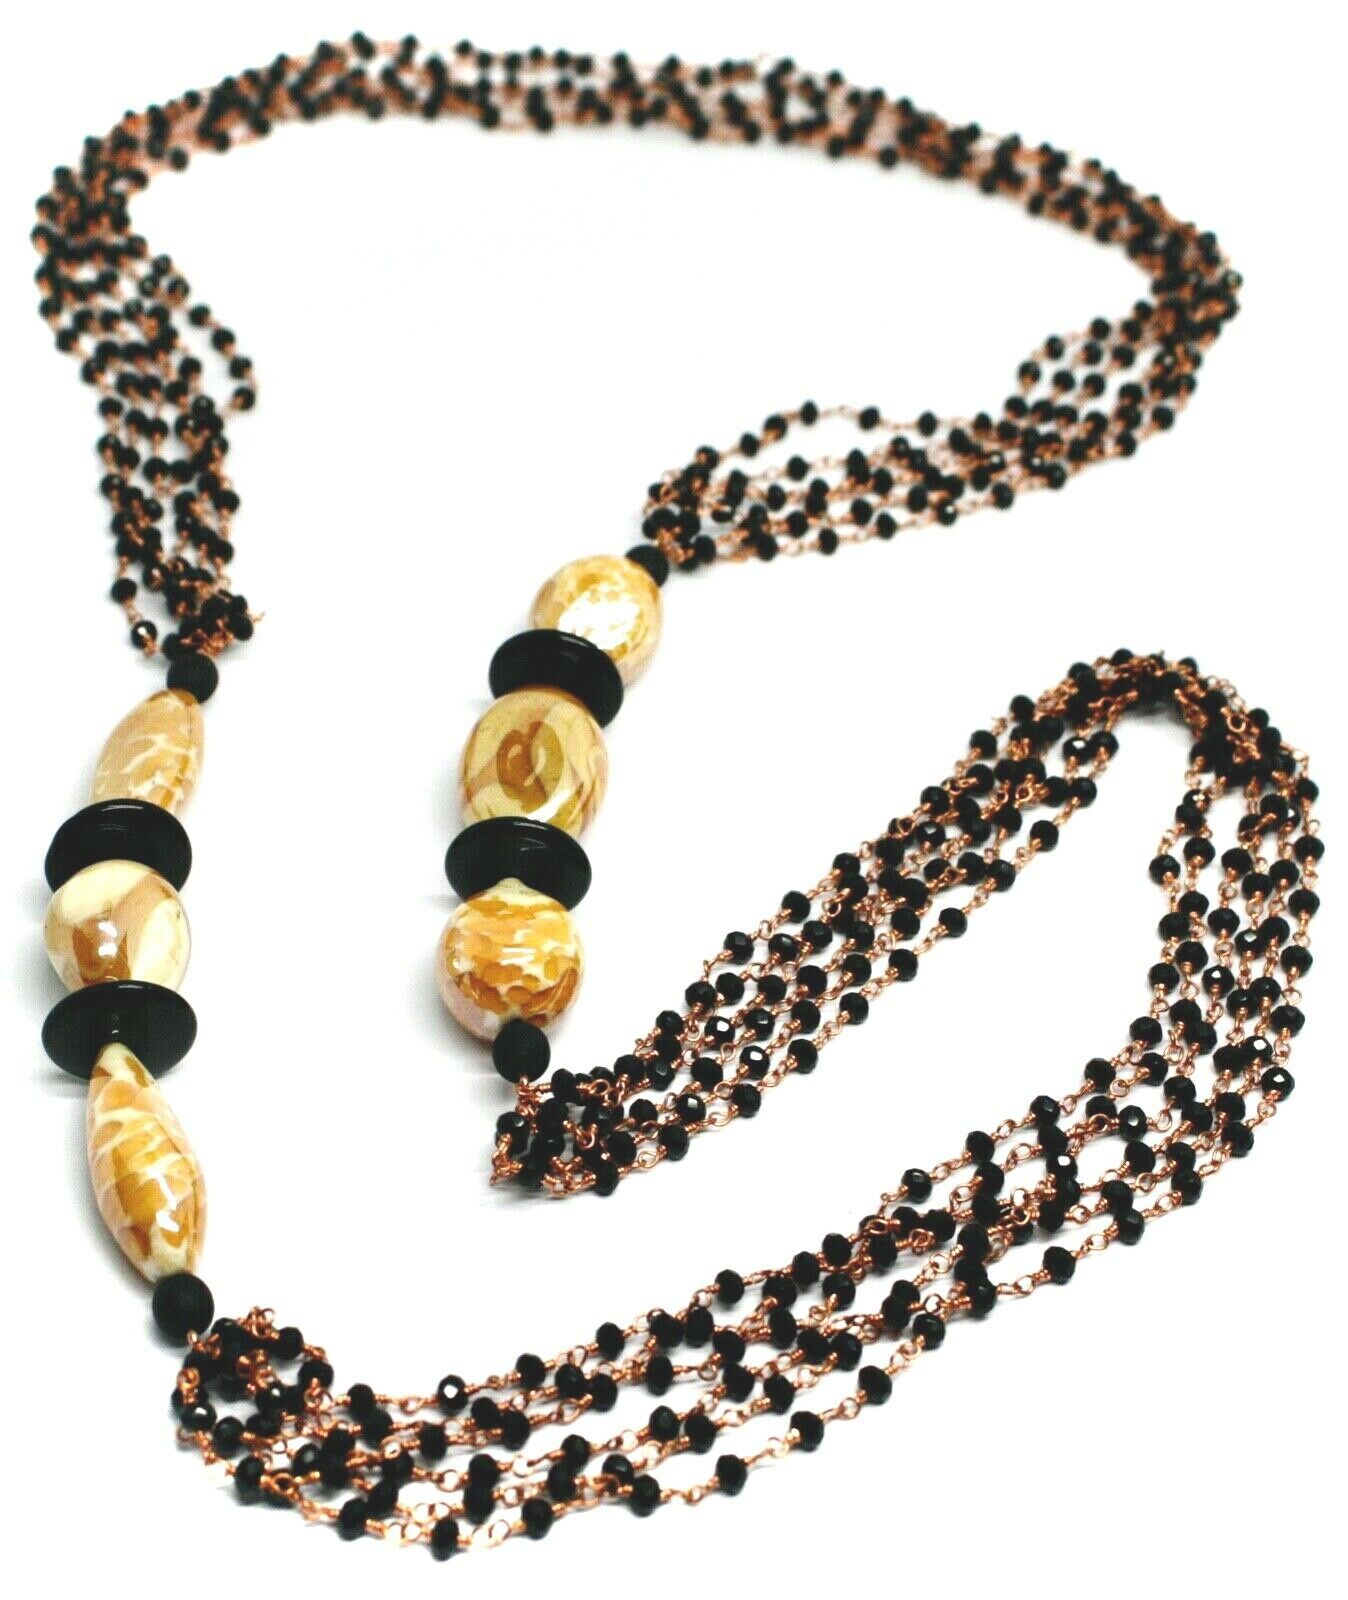 """ROSE NECKLACE BLACK, ORANGE SPOTTED DROP OVAL MURANO GLASS, MULTI WIRES 35"""" LONG"""